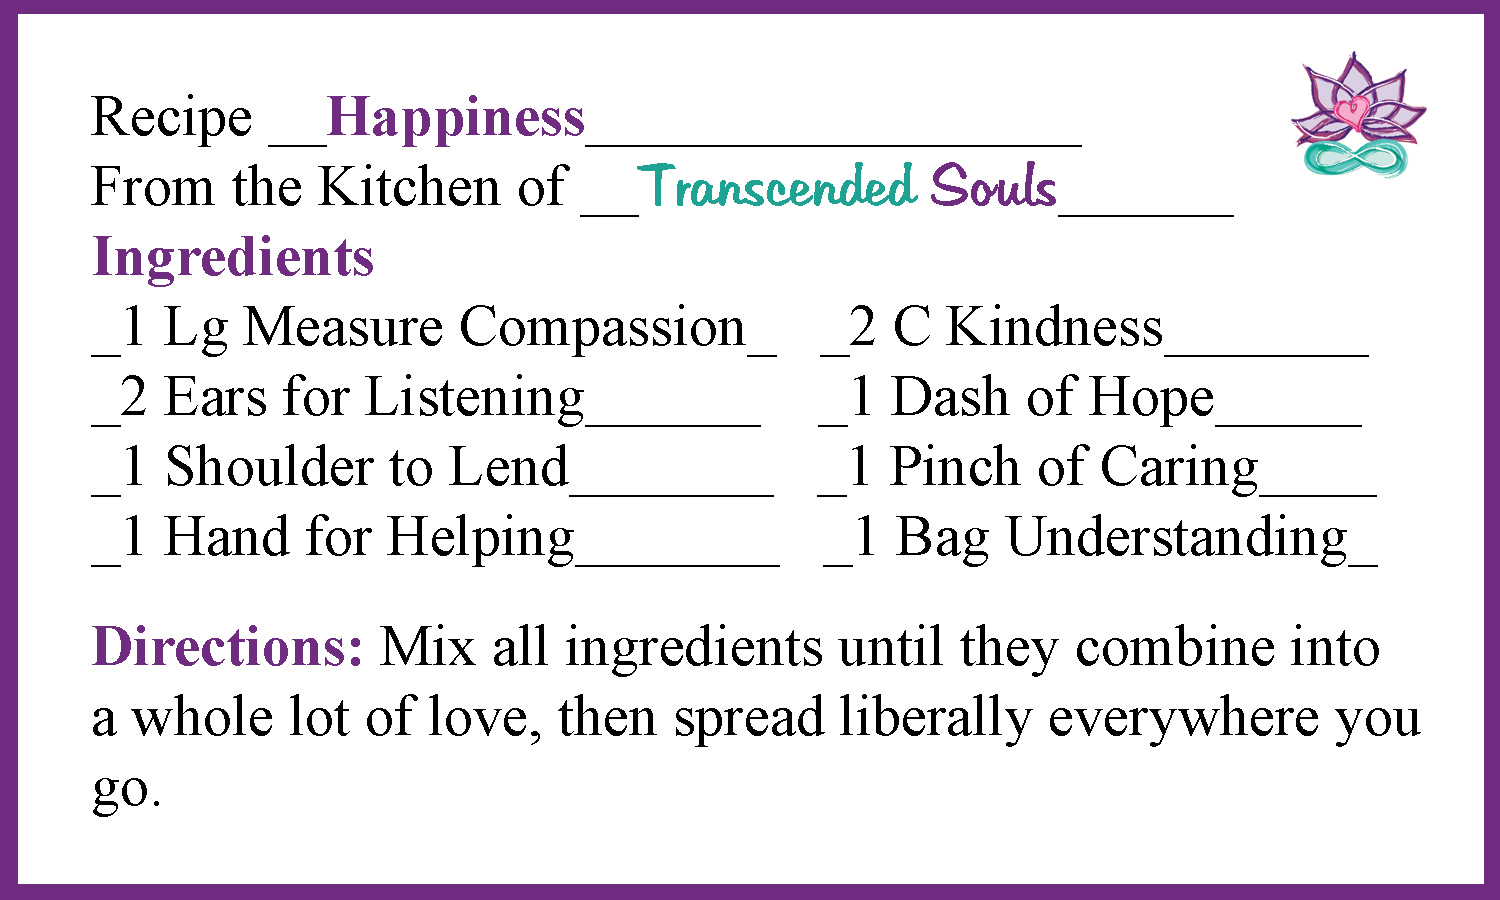 happiness-recipe-card